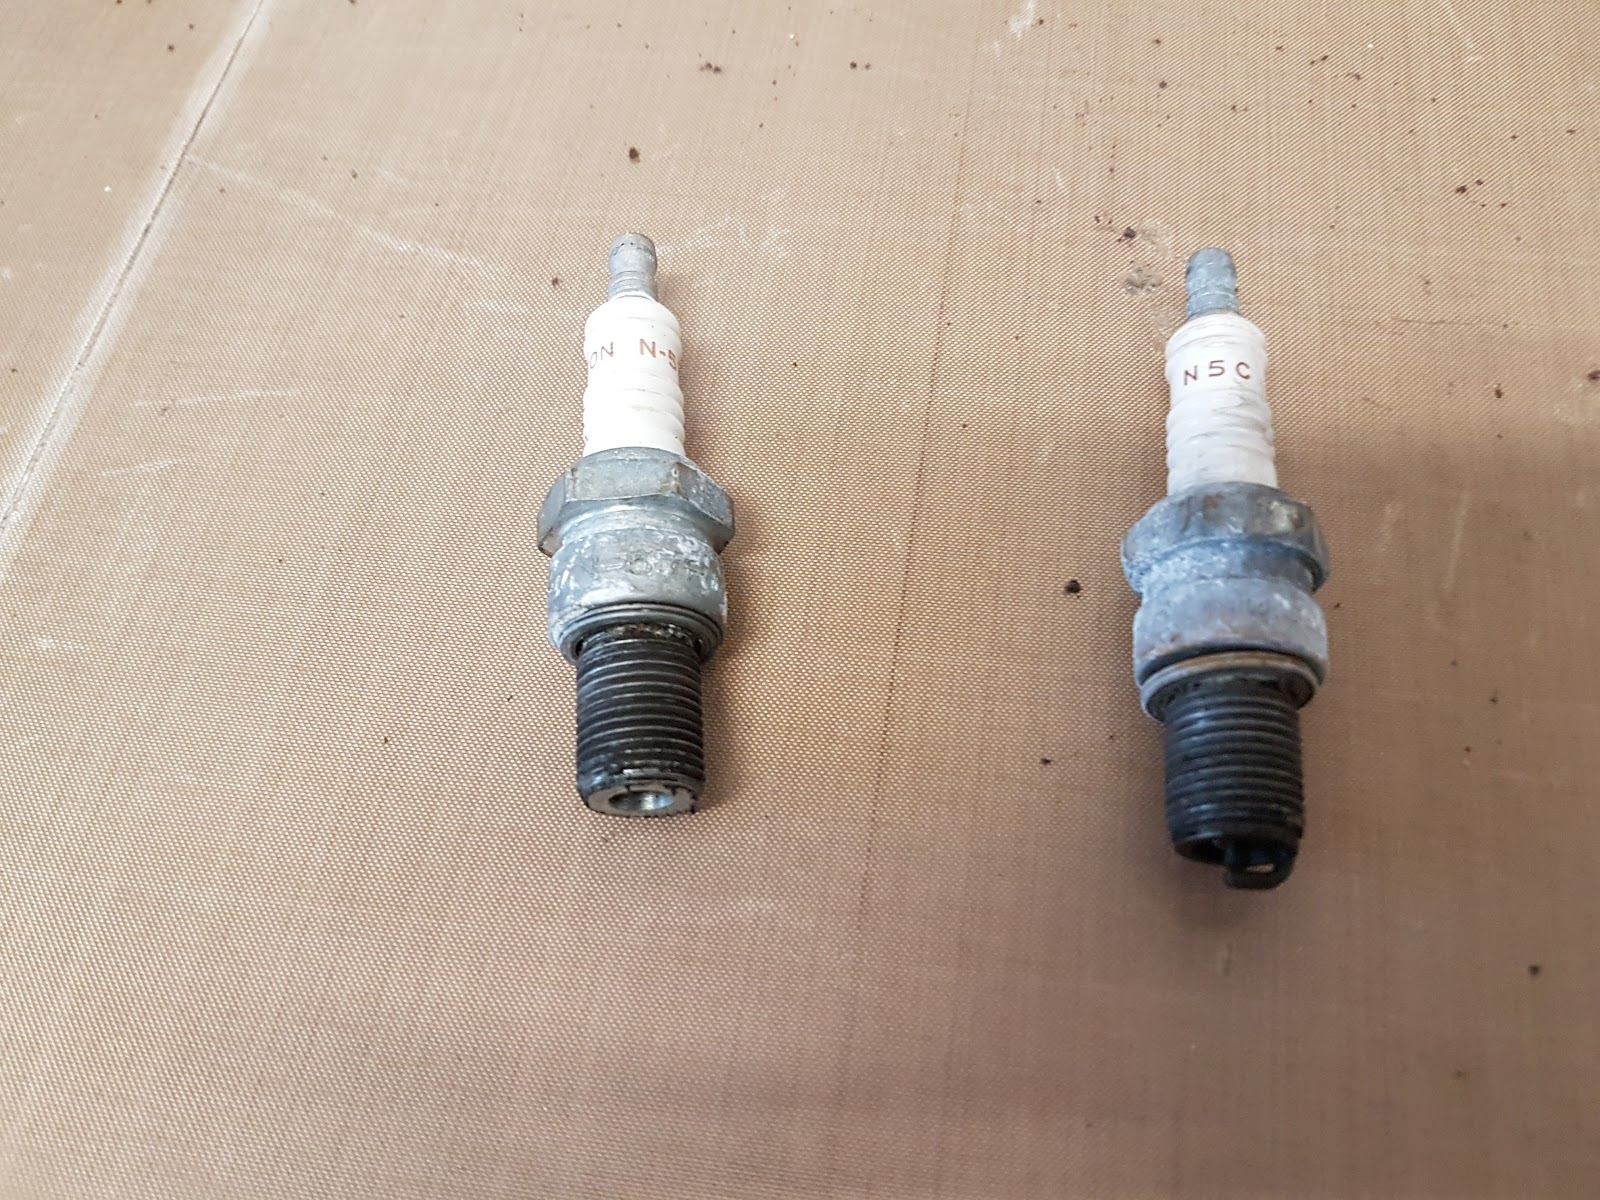 Triumph Boneville T140 mismatched spark plugs extracted.